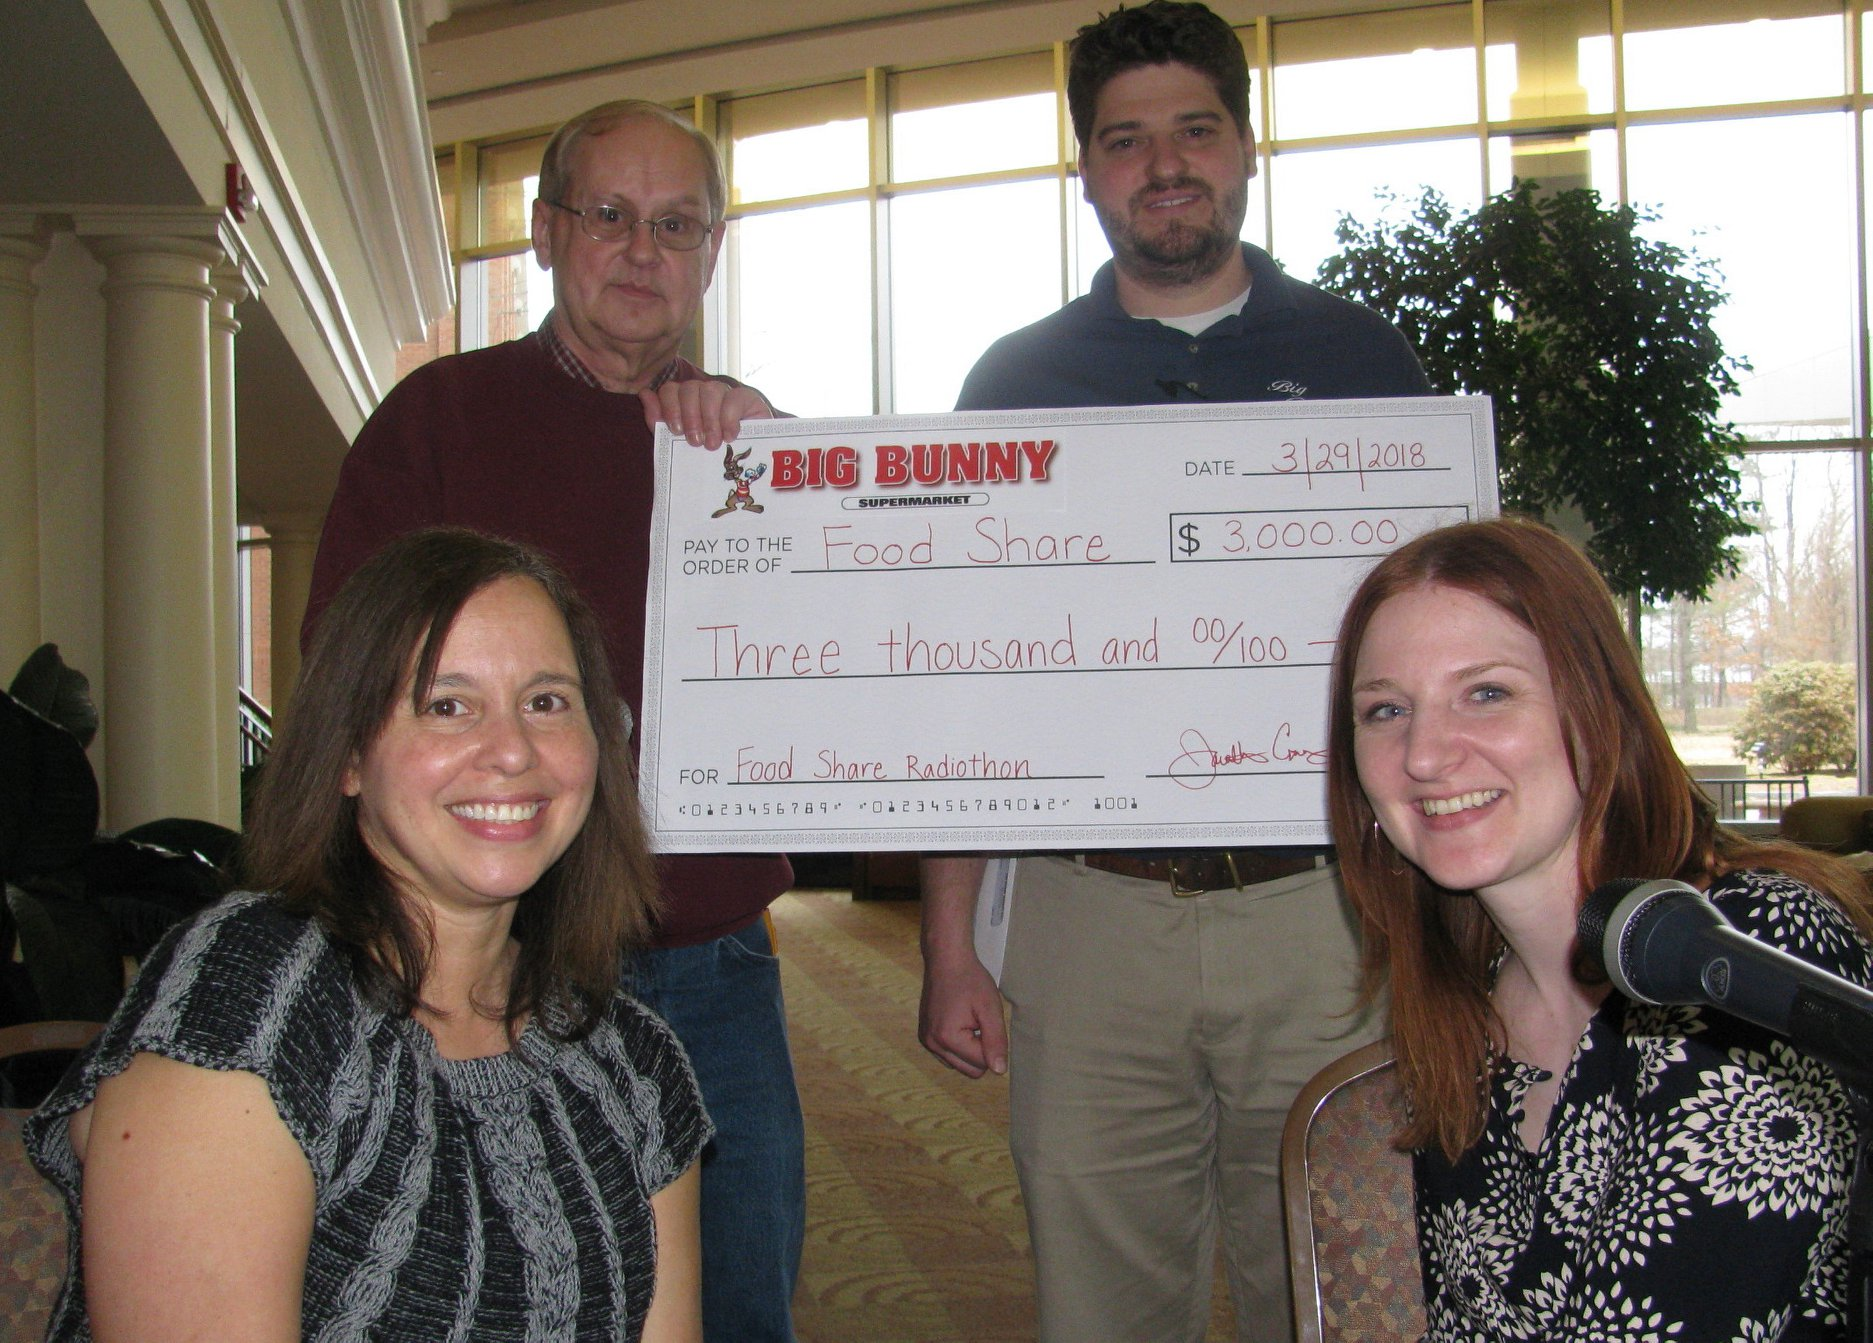 Foodshare radiothon collects $29,800 in 39th annual broadcast